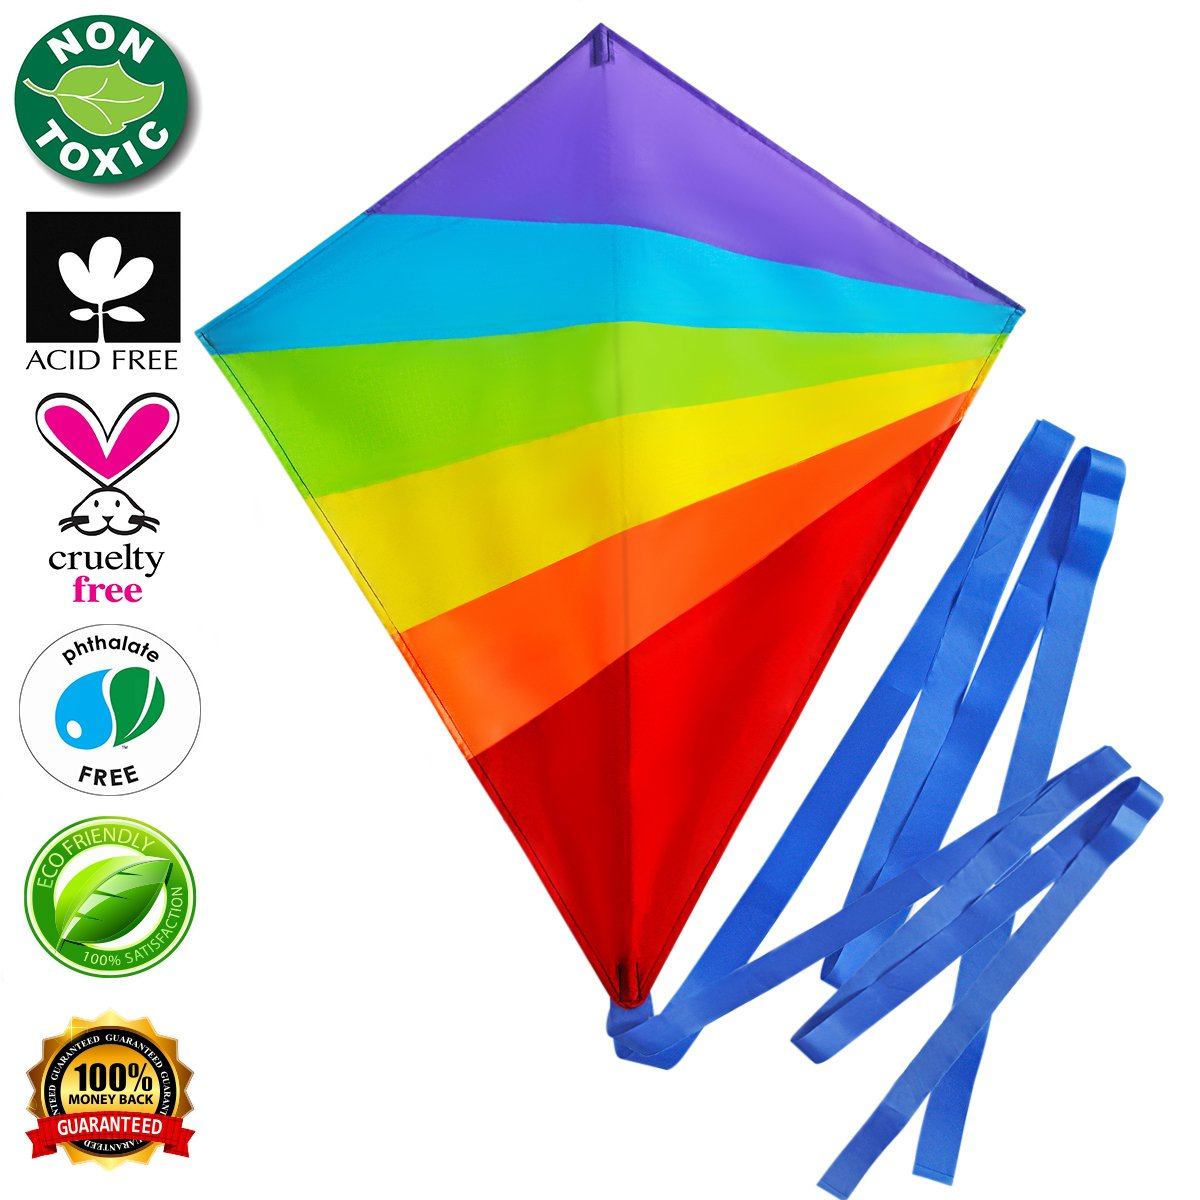 Kite Large Flying Kites Kit for Kids with String Handle (NEW Edition) - Fly Big Easy Diamond Rainbow High Flyer - FREE Extra Gift (Ebook) - Best Gift: Beach Summer Runner Toy for Children Travel Size by Imaginesty